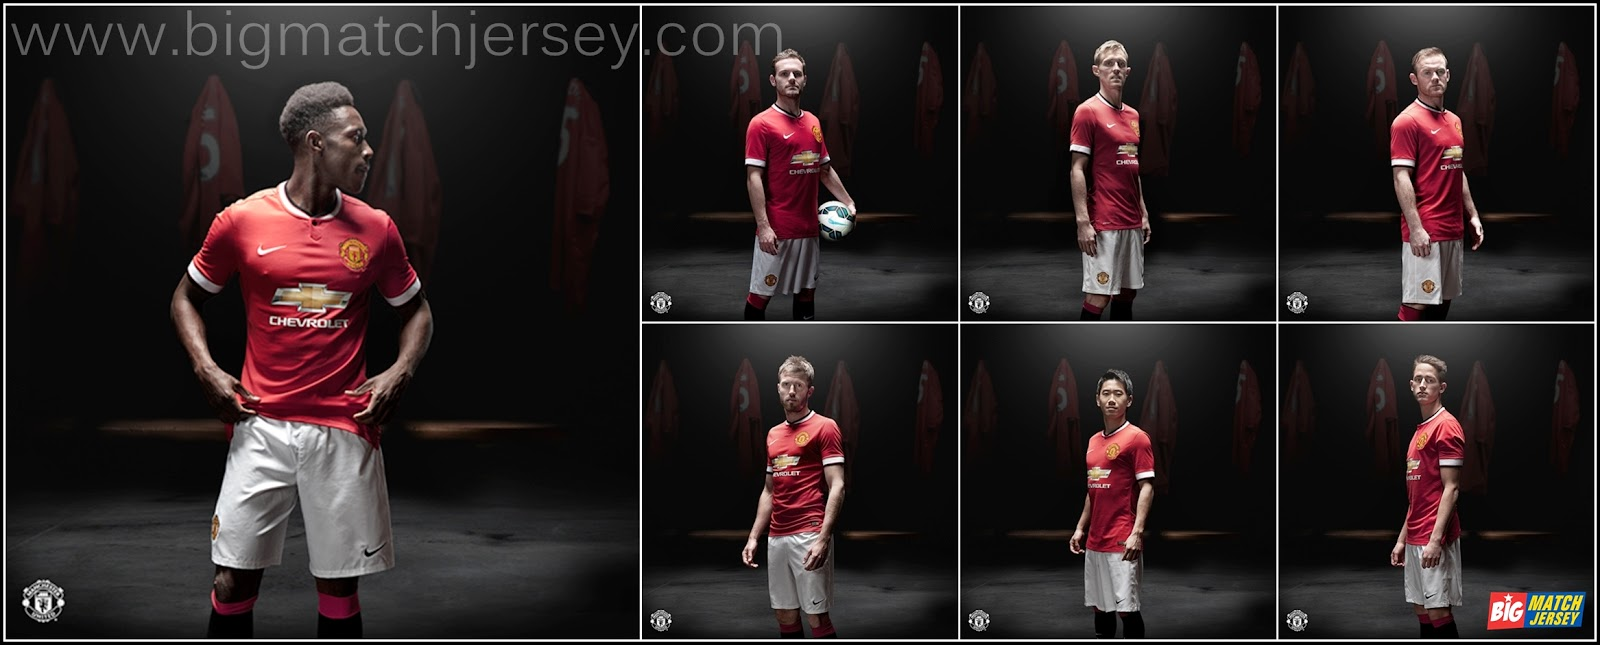 Football Jerseys 2014-2015 Official Team Manchester United Chevrolet Kits Release